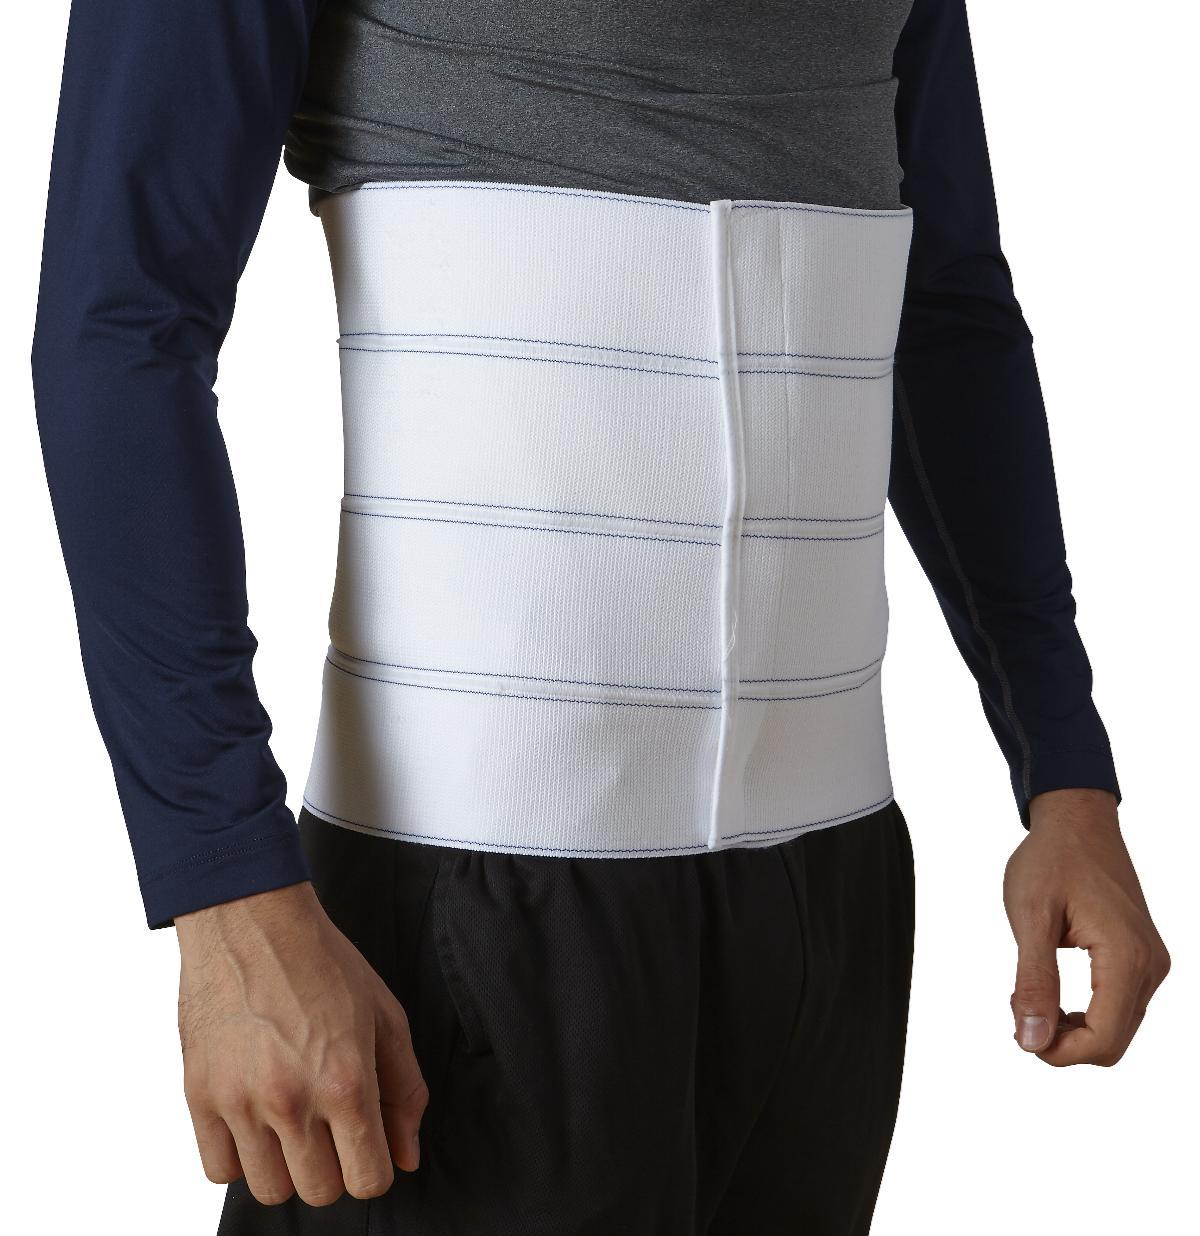 Therapy & Fitness Orthopedic Soft Goods Abdominal Binders & Ribs Belts - Ort213004xl - Abdominal Binder 12in 4-panel Std 4xl ORT213004XL